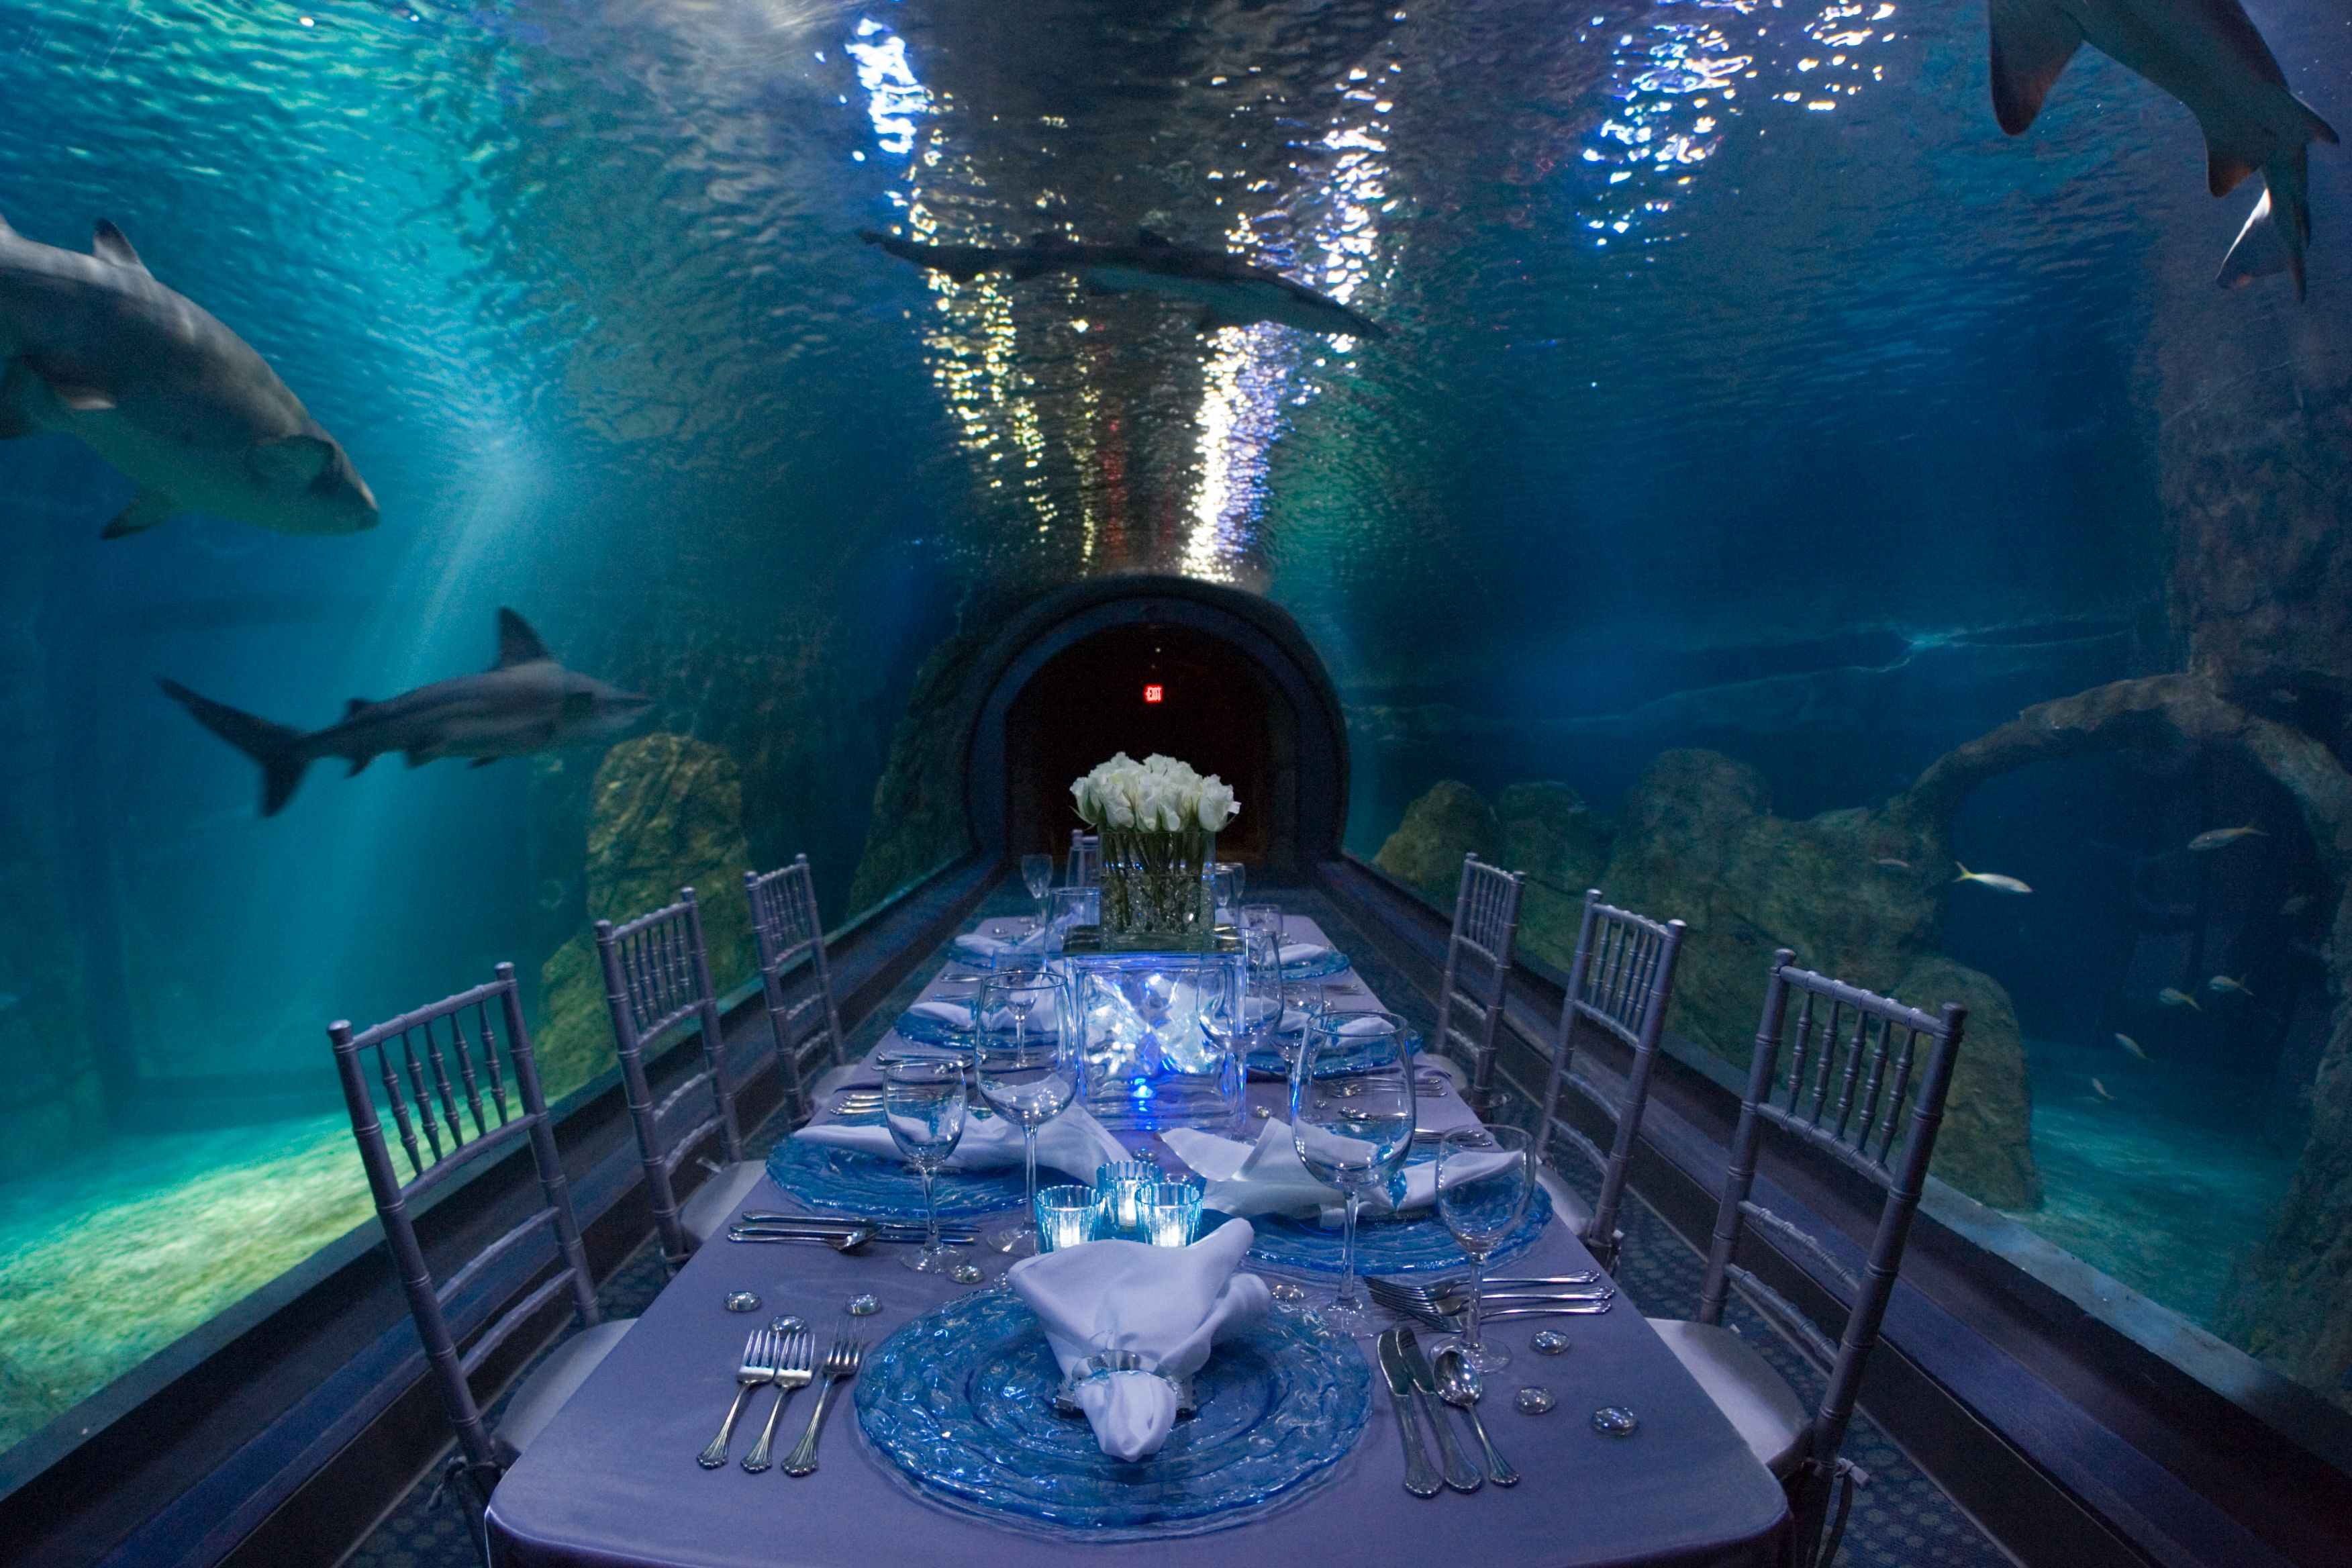 One of a kind events at Adventure Aquarium, Camden New Jersey